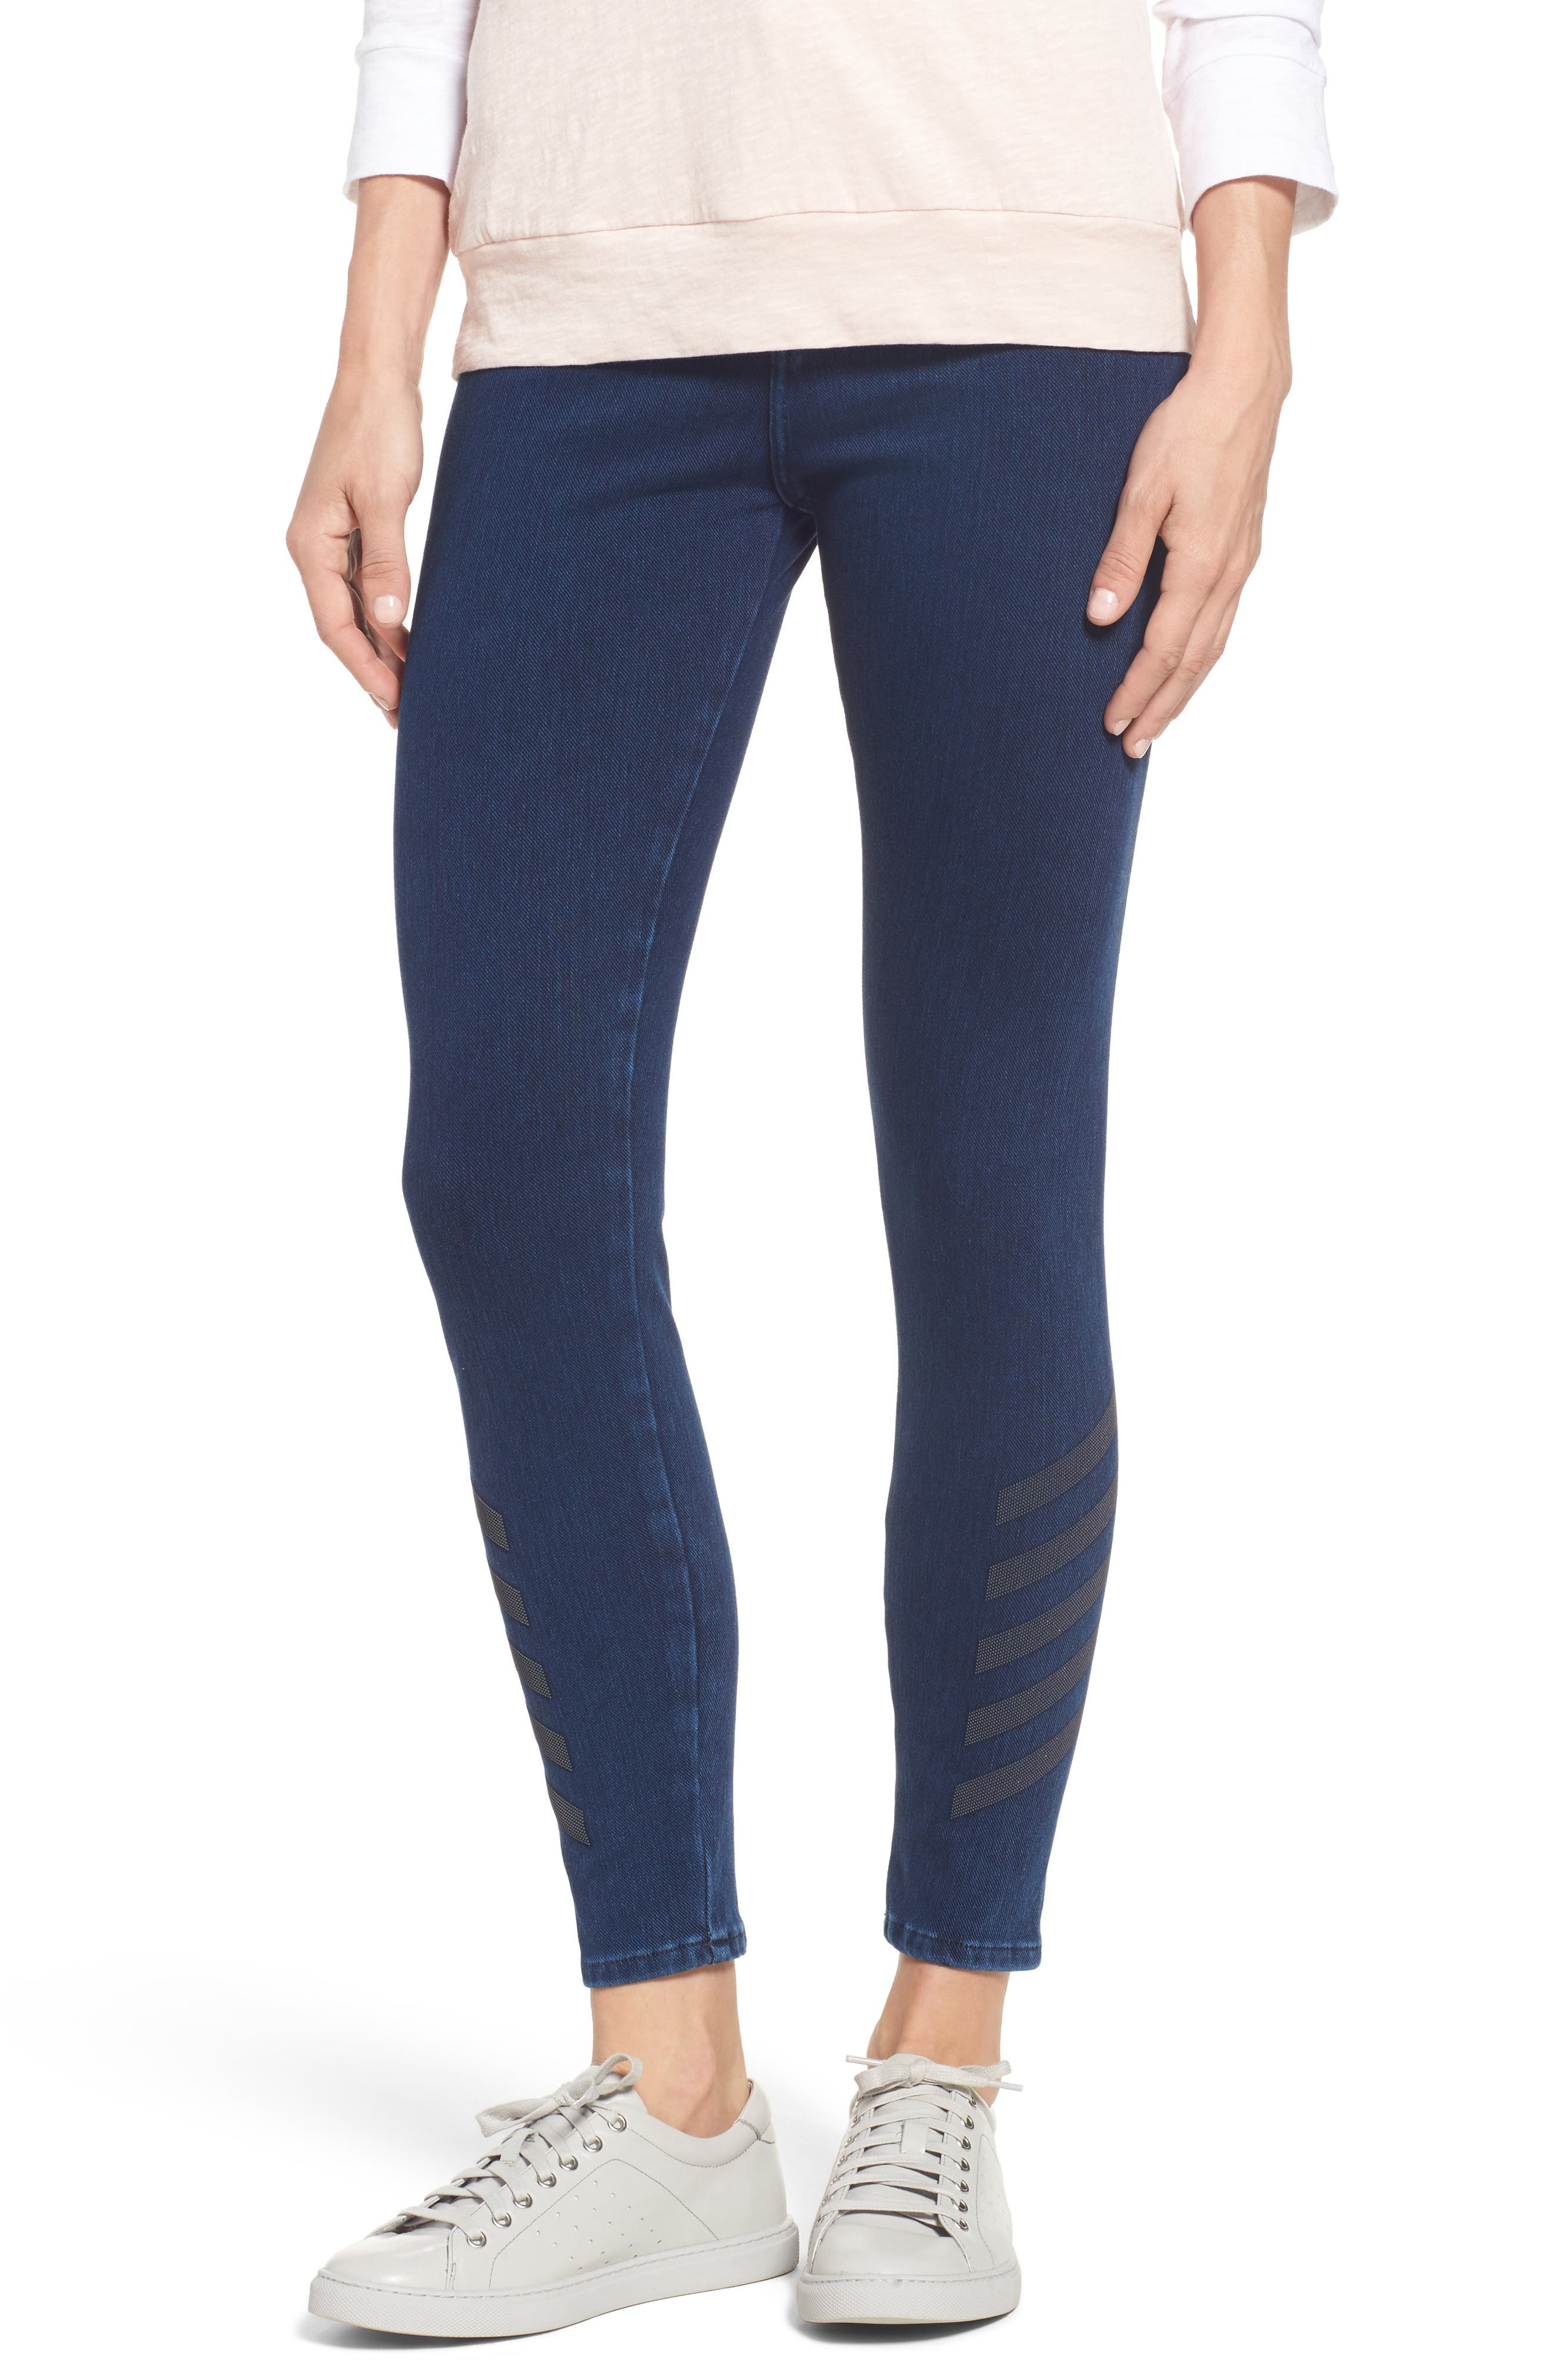 Joie Embellished High Waist Skinny Jeans,                             Main thumbnail 1, color,